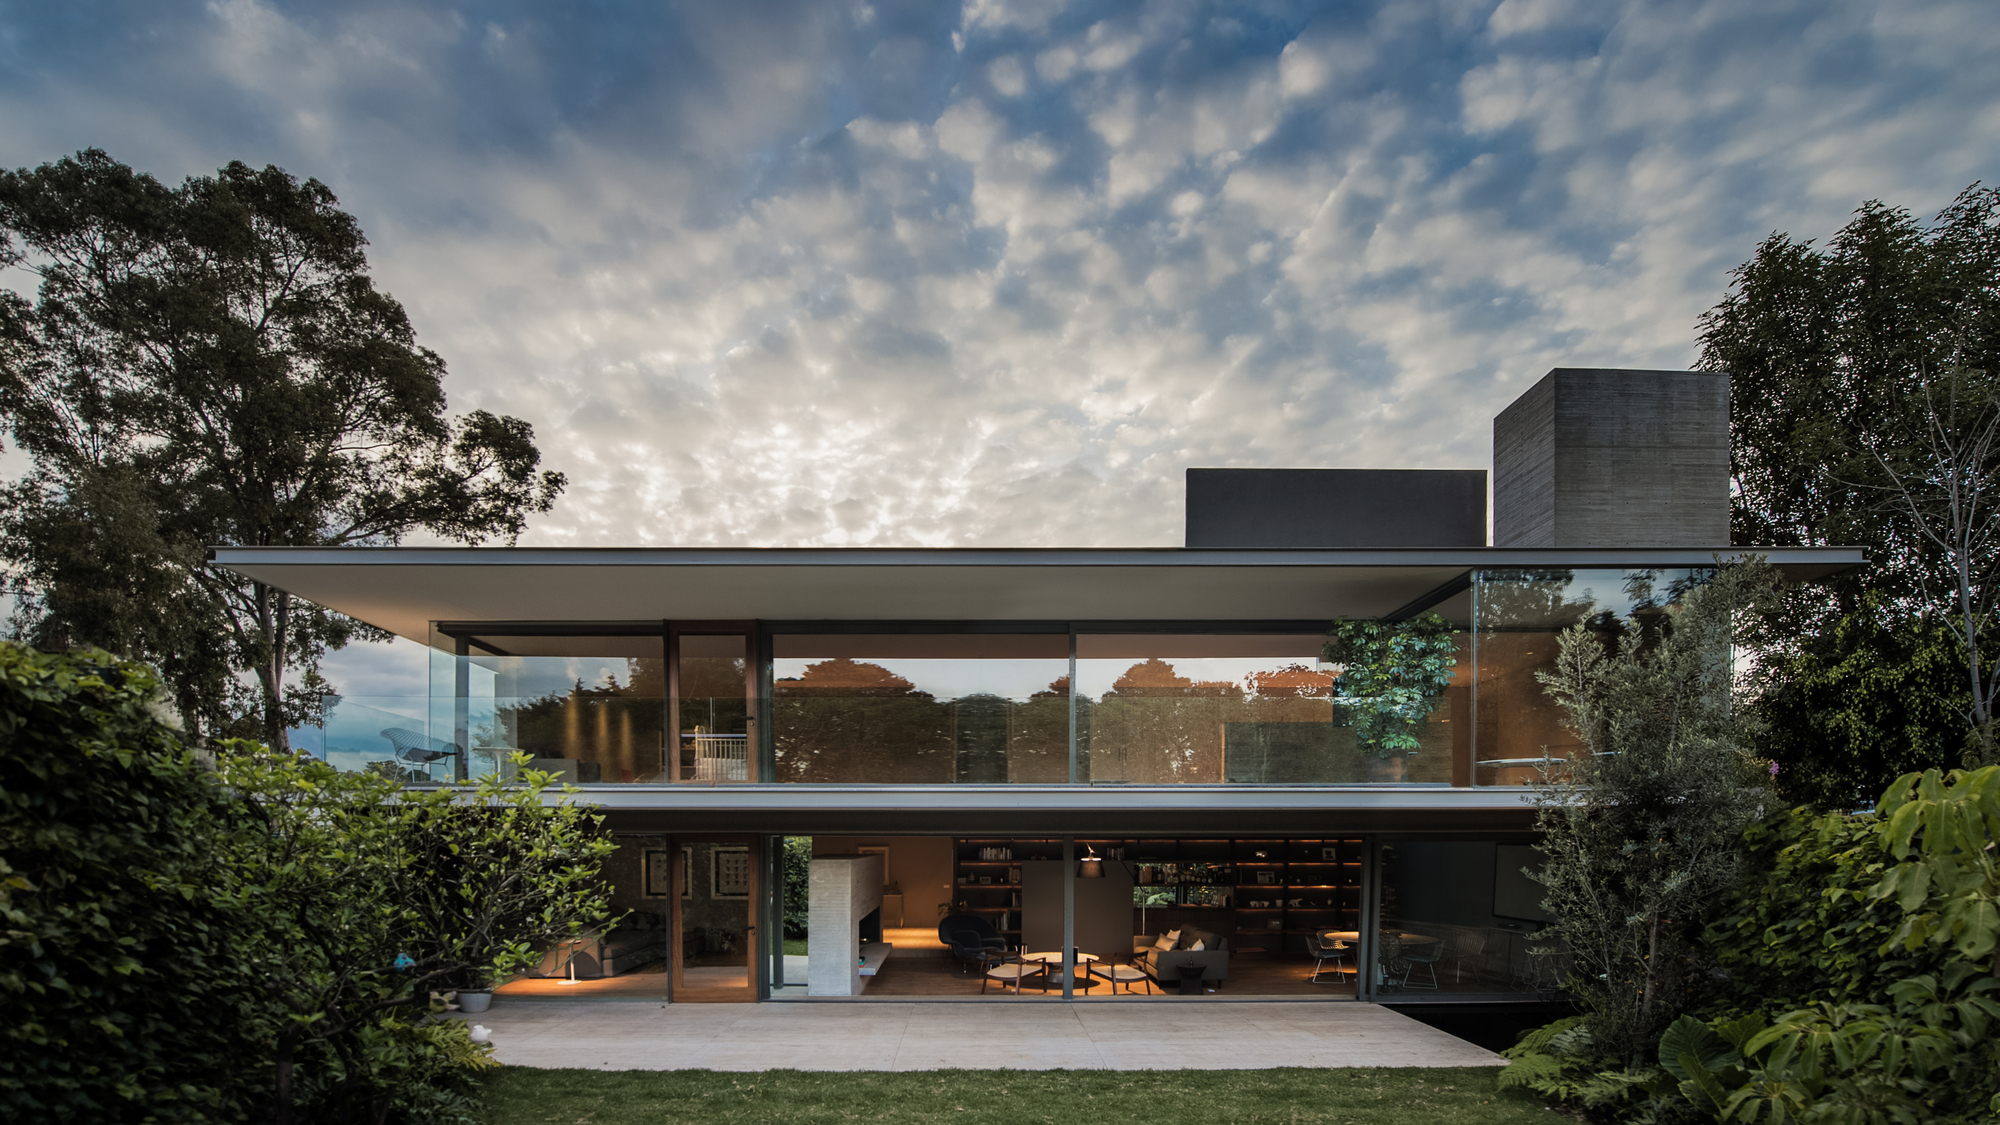 Ramos house jjrr arquitectura archdaily - Maison car park los angeles anonymous architects ...